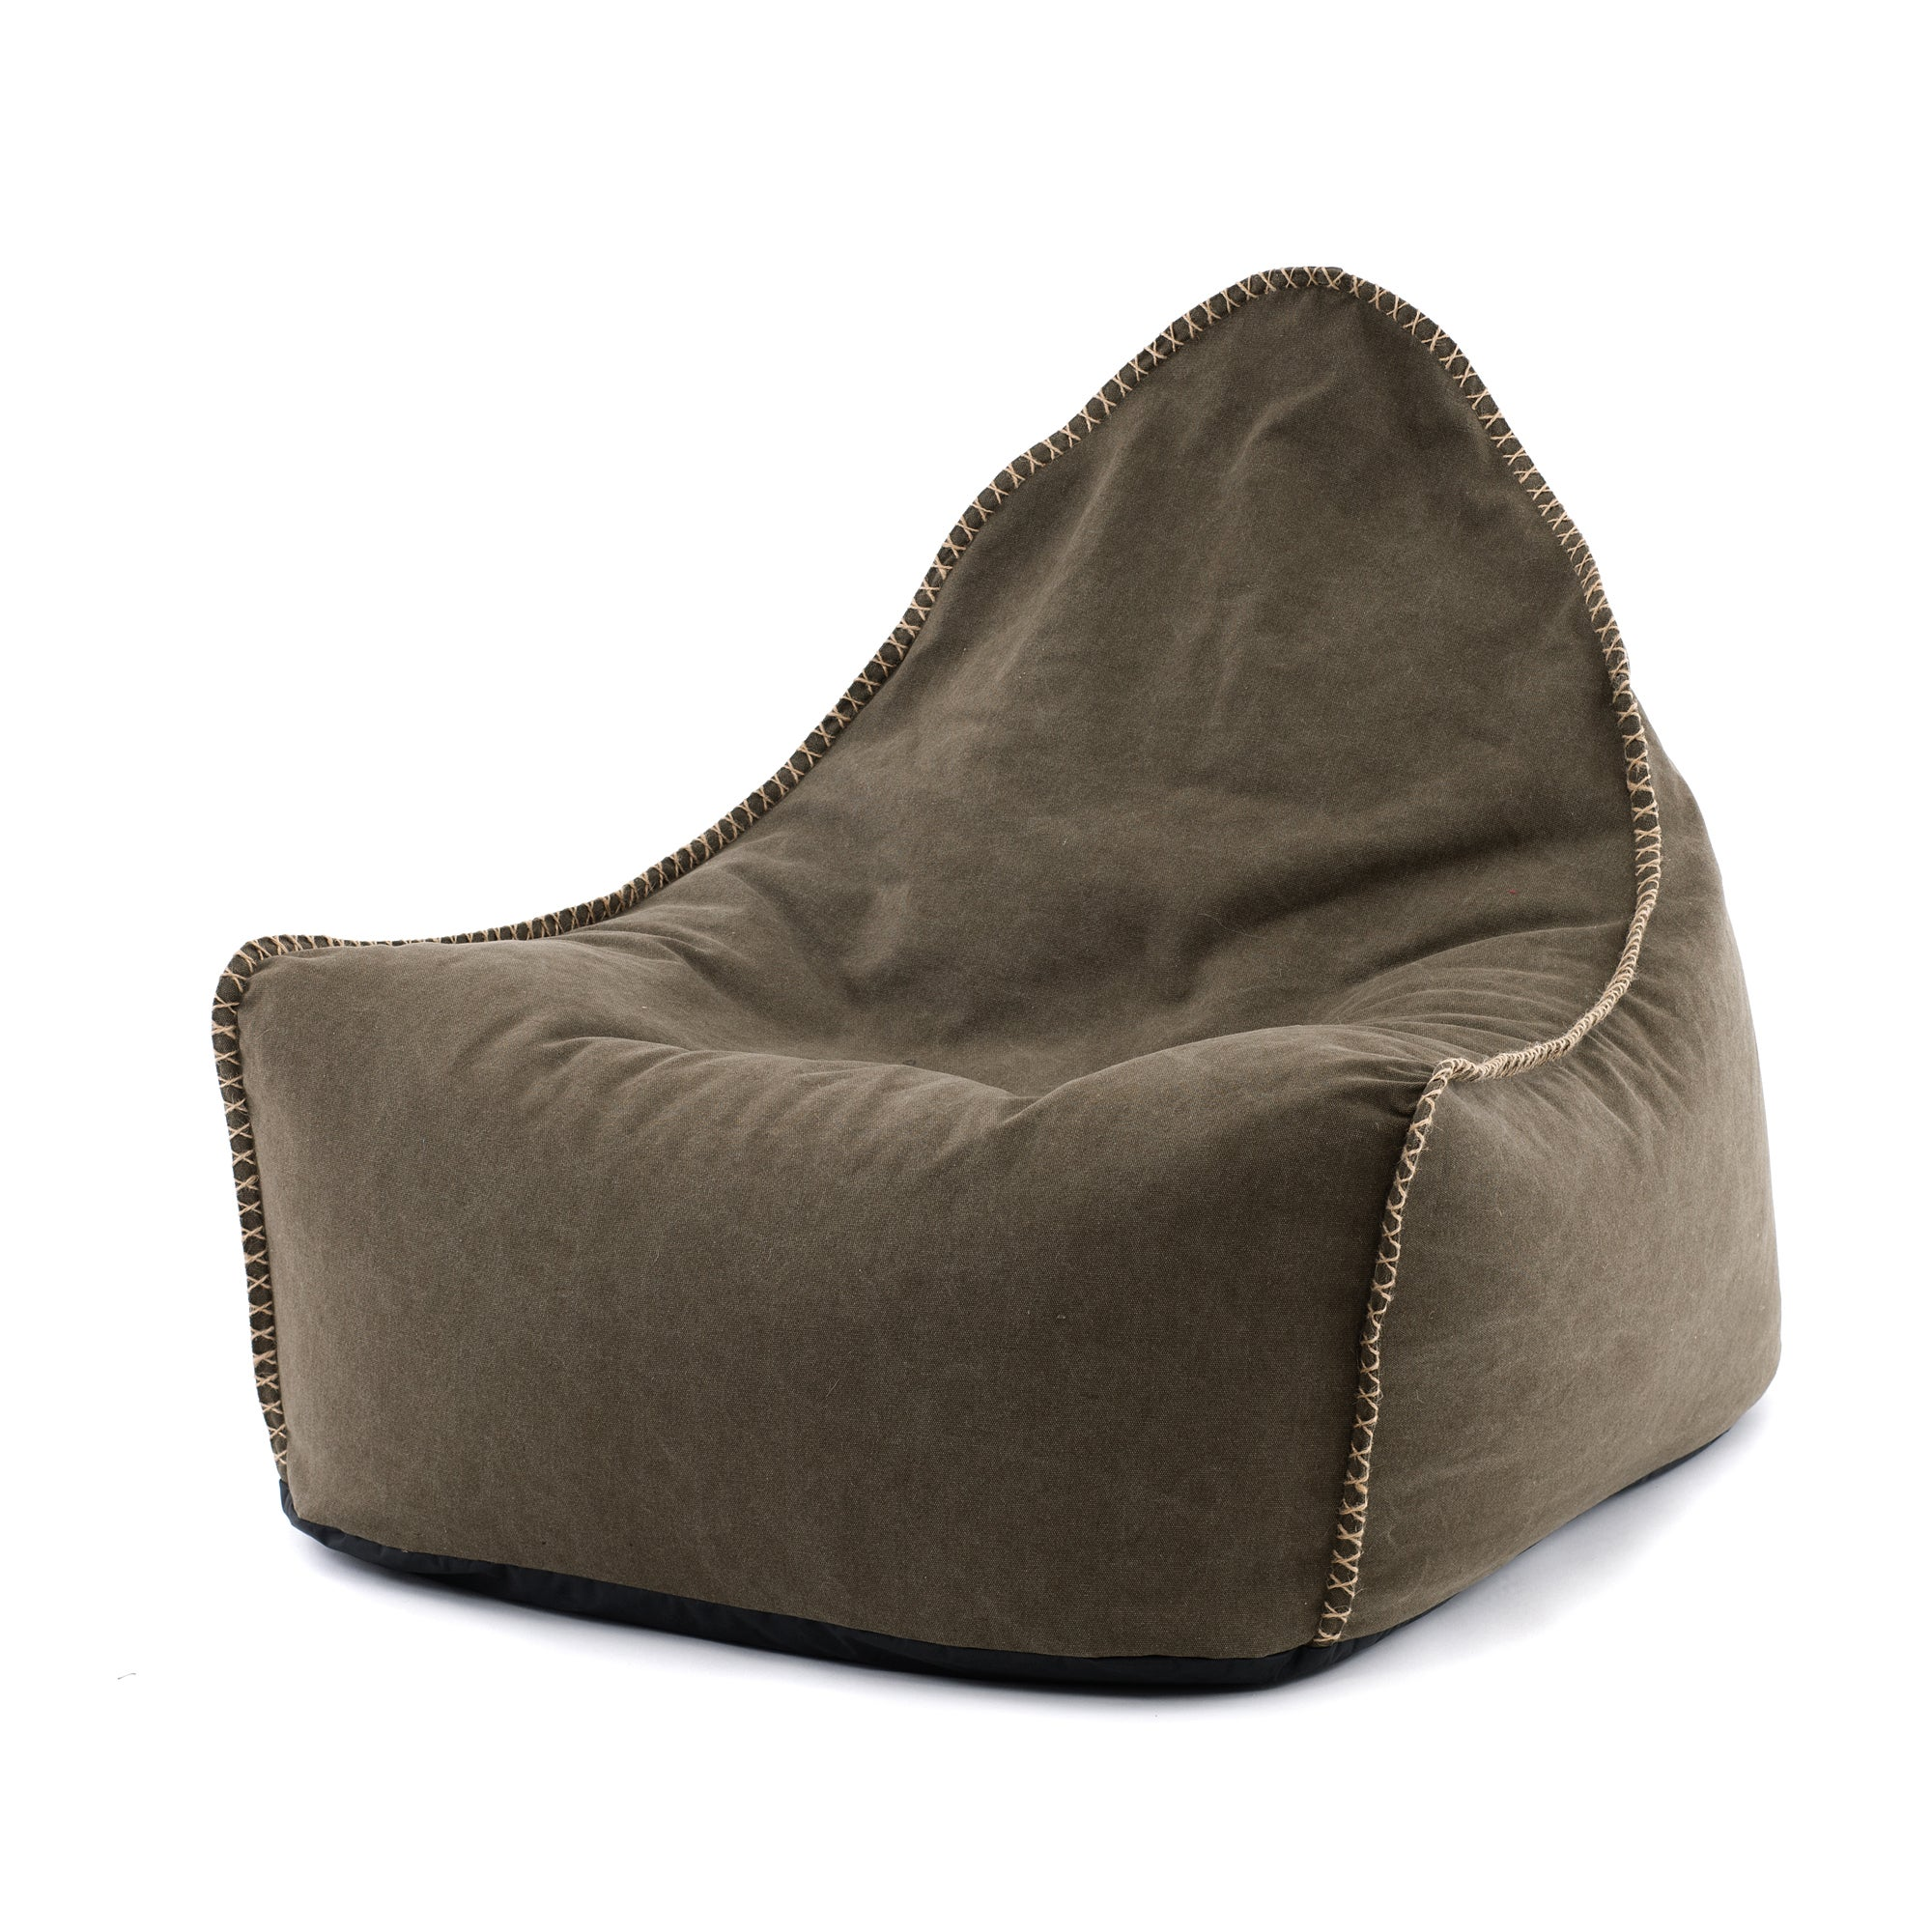 Canvas Bean Bag Chair